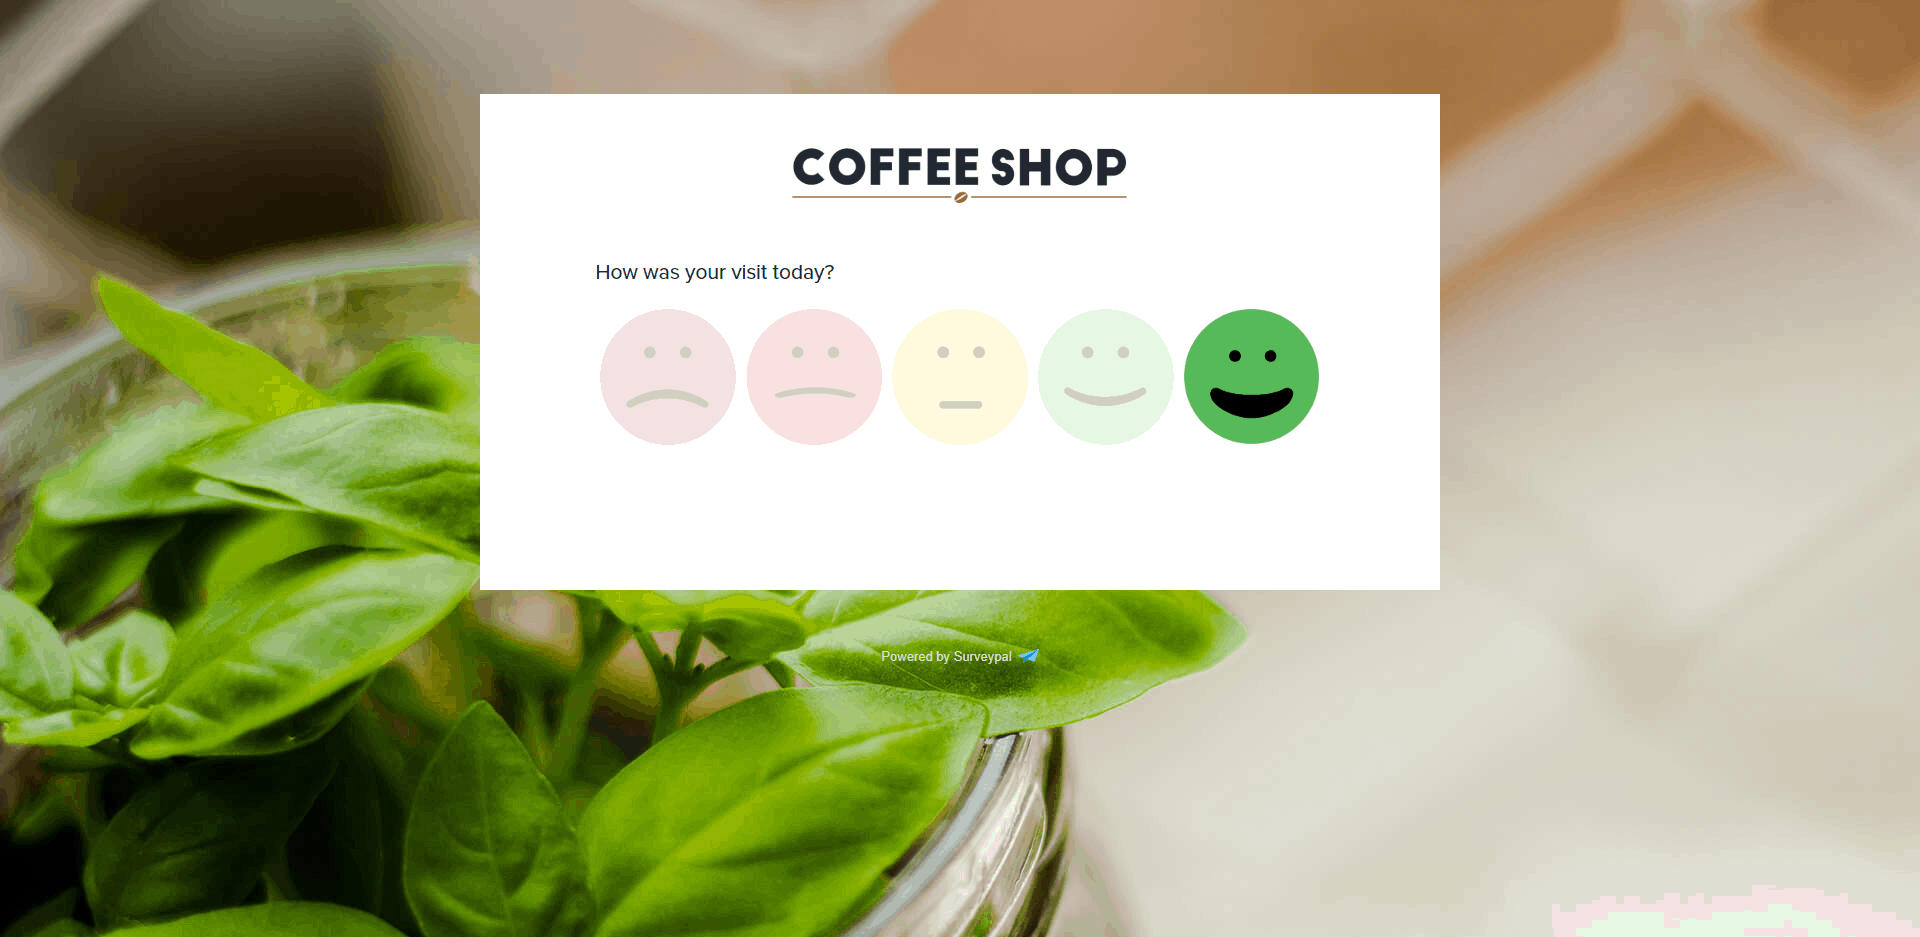 coffee shop customer satisfaction survey